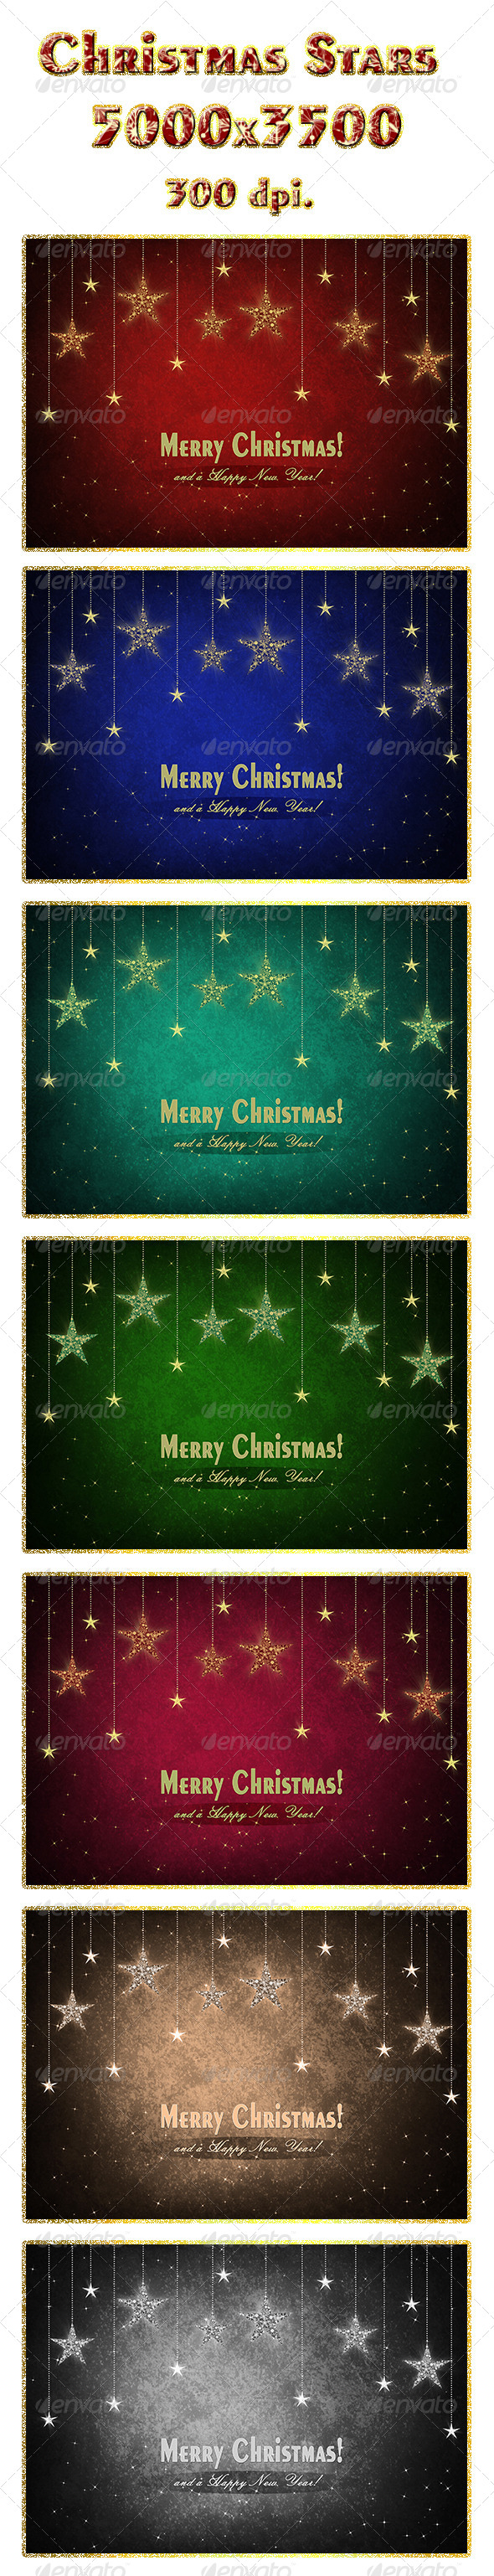 Christmas Stars - Abstract Backgrounds